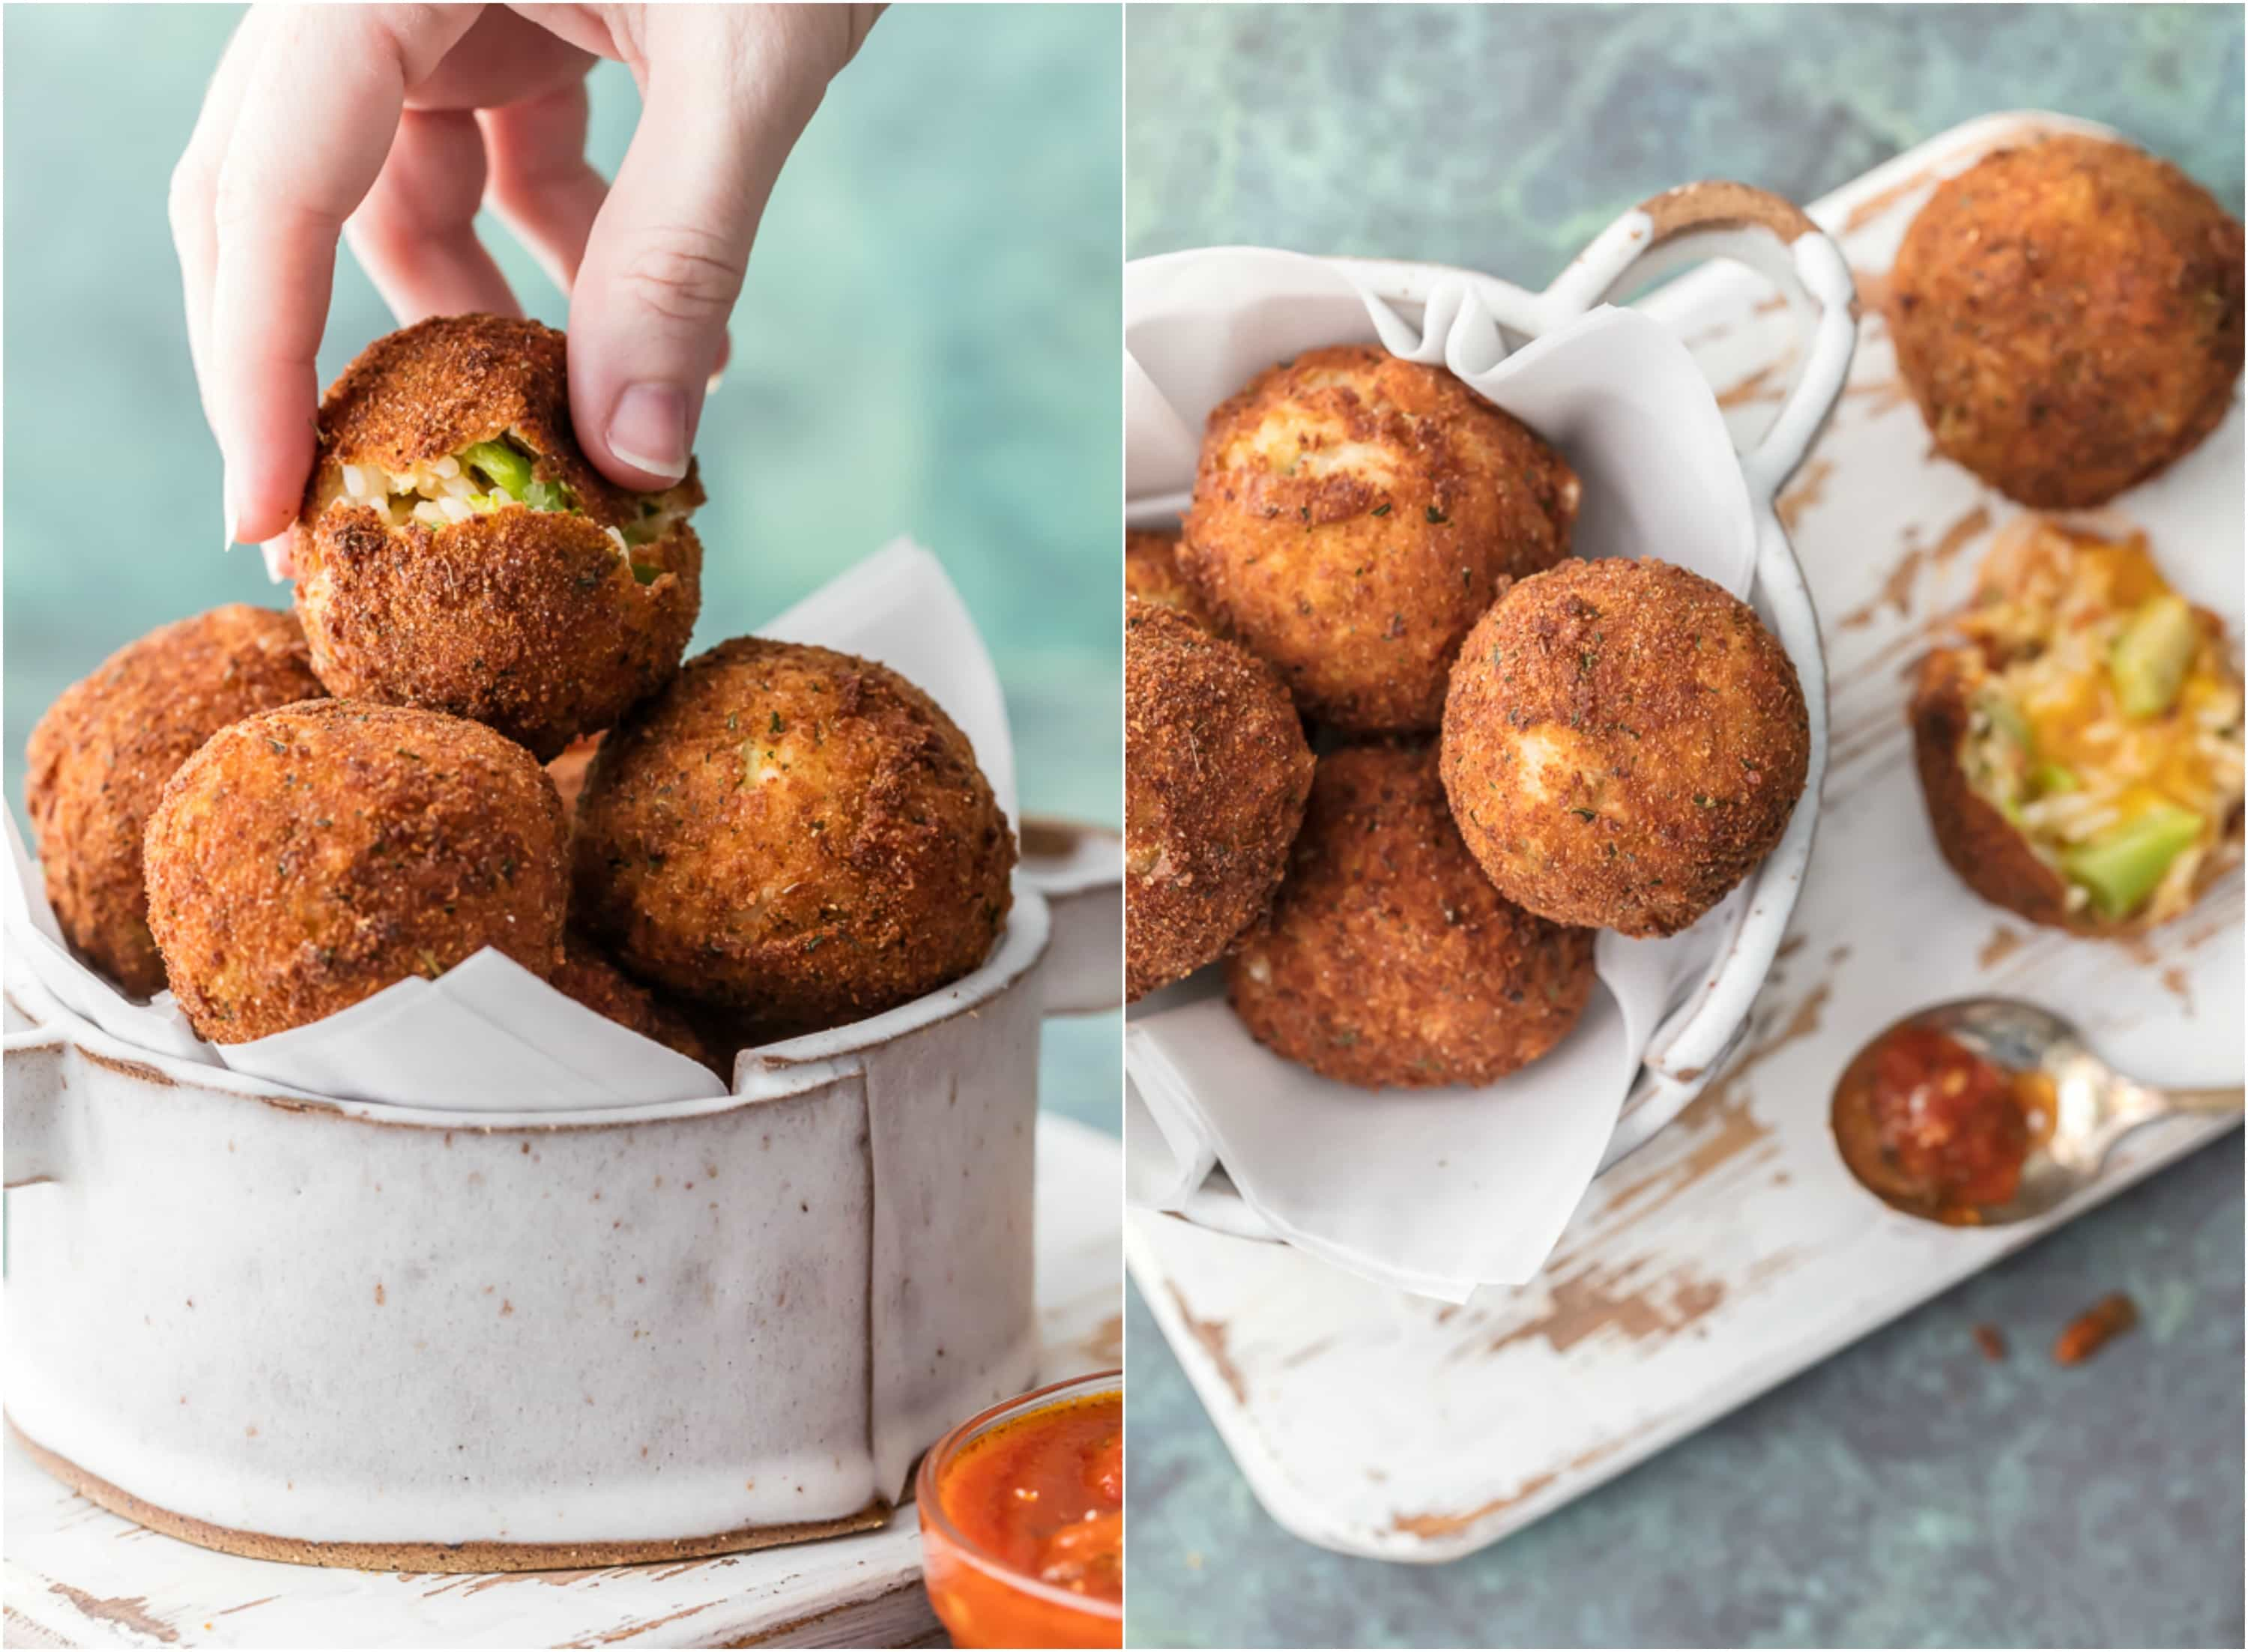 One of our favorite comfort food appetizers is BACON BROCCOLI CHEESE ARANCINI! These cheesy fried rice balls are the ultimate starter to any meal at home. So addicting and delicious!